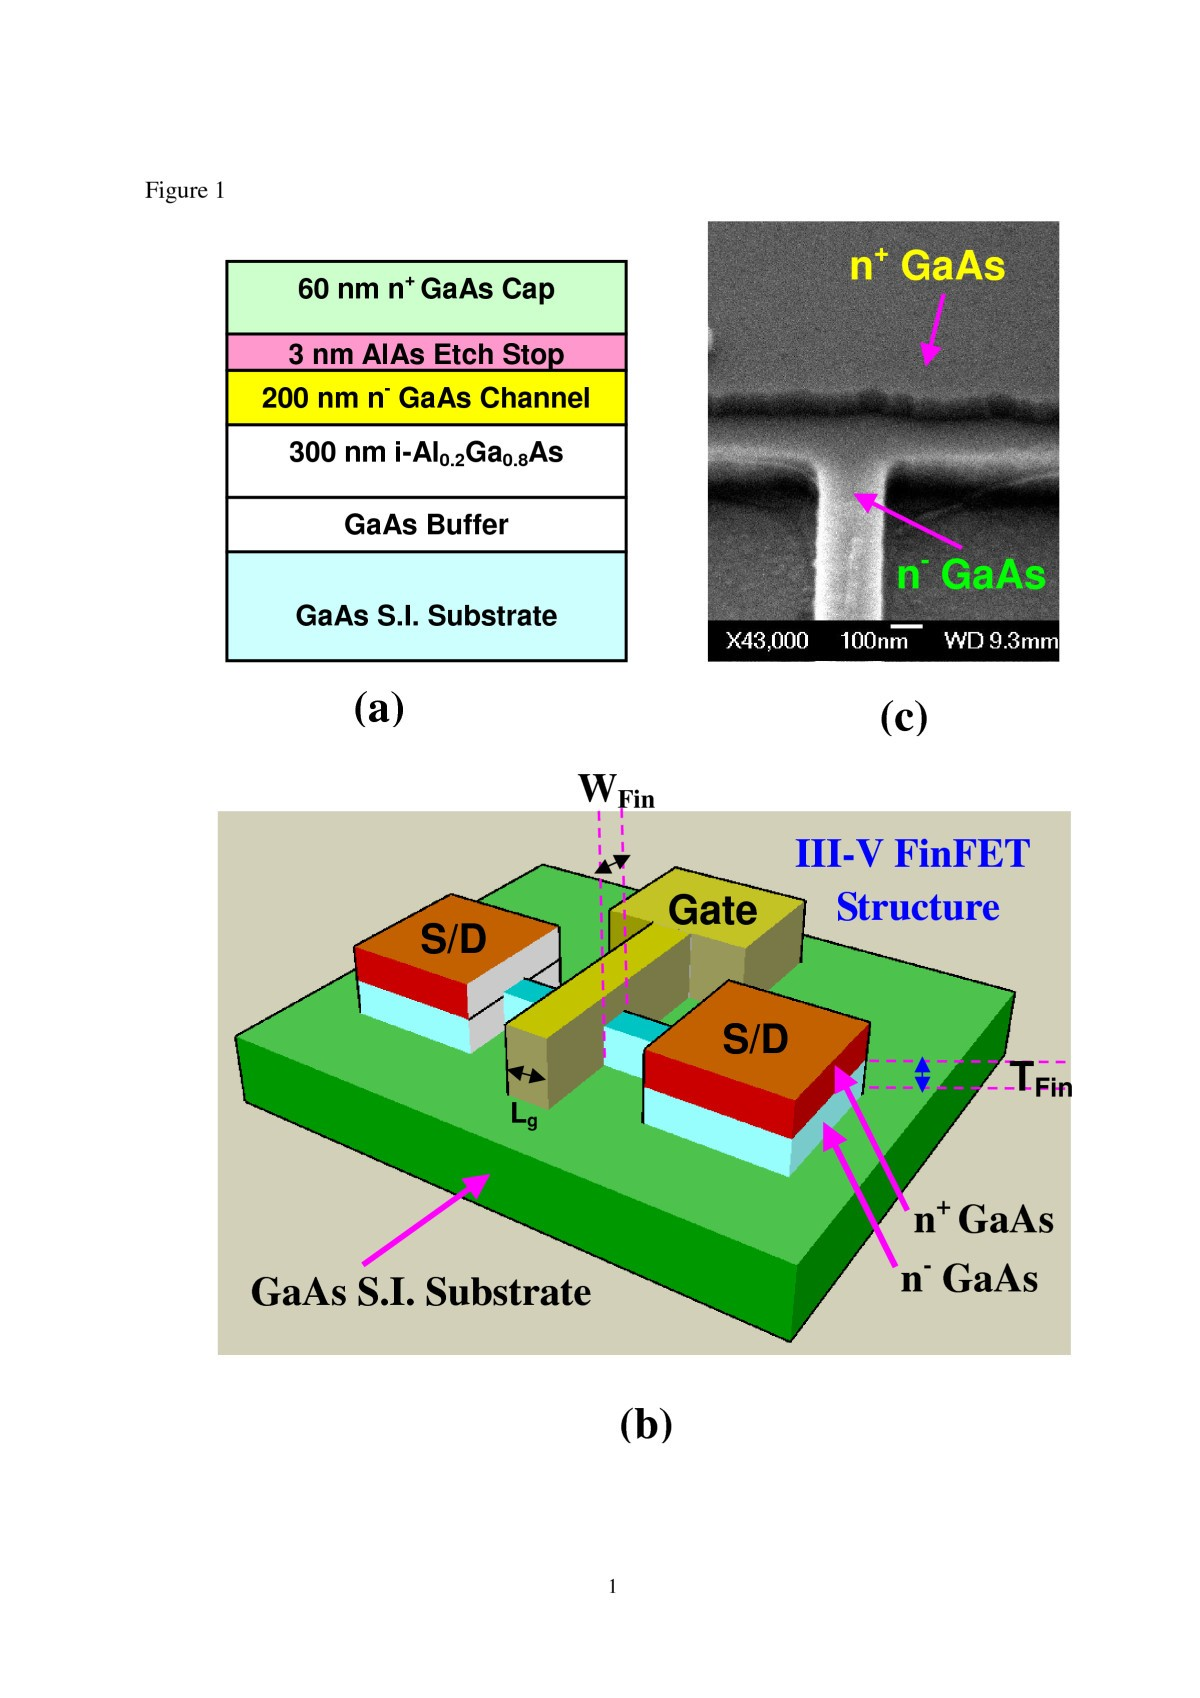 High Performance Iii V Mosfet With Nano Stacked K Gate Testingelectroniccomponents 2methodsfortestingmosfetshtml Dielectric And 3d Fin Shaped Structure Nanoscale Research Letters Full Text